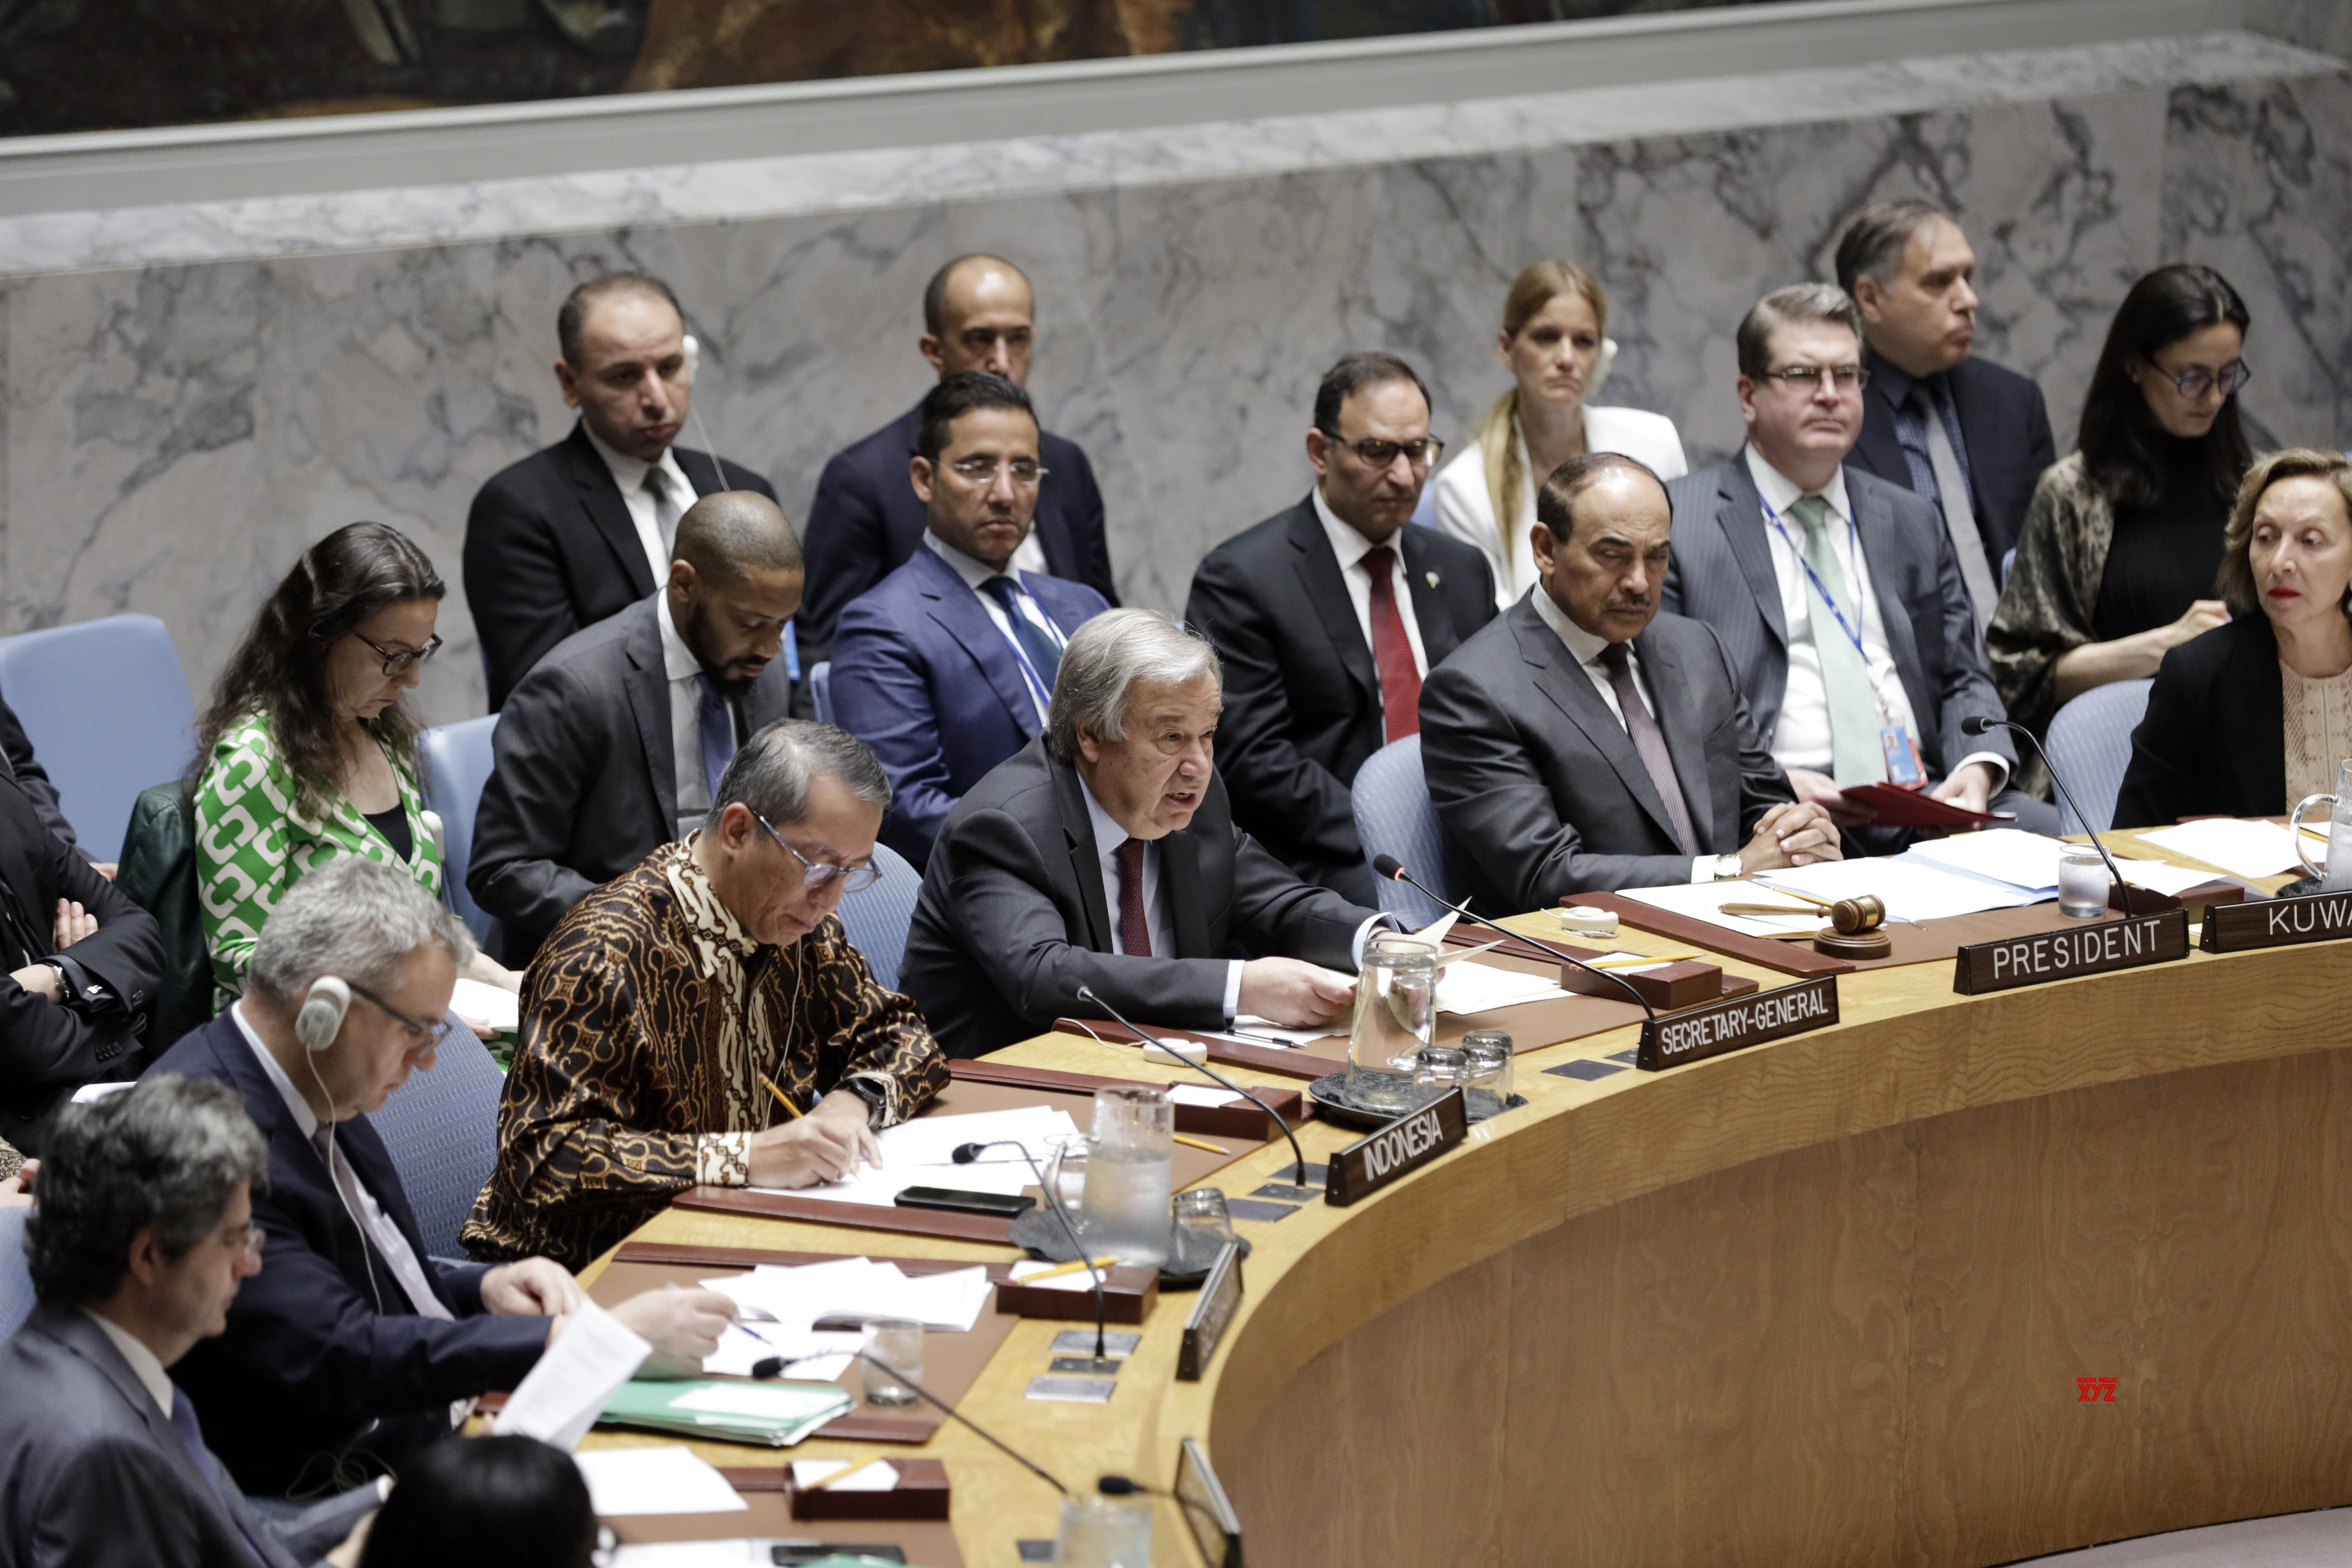 UN - SECURITY COUNCIL - MEETING - CONFLICT PREVENTION AND MEDITATION #Gallery